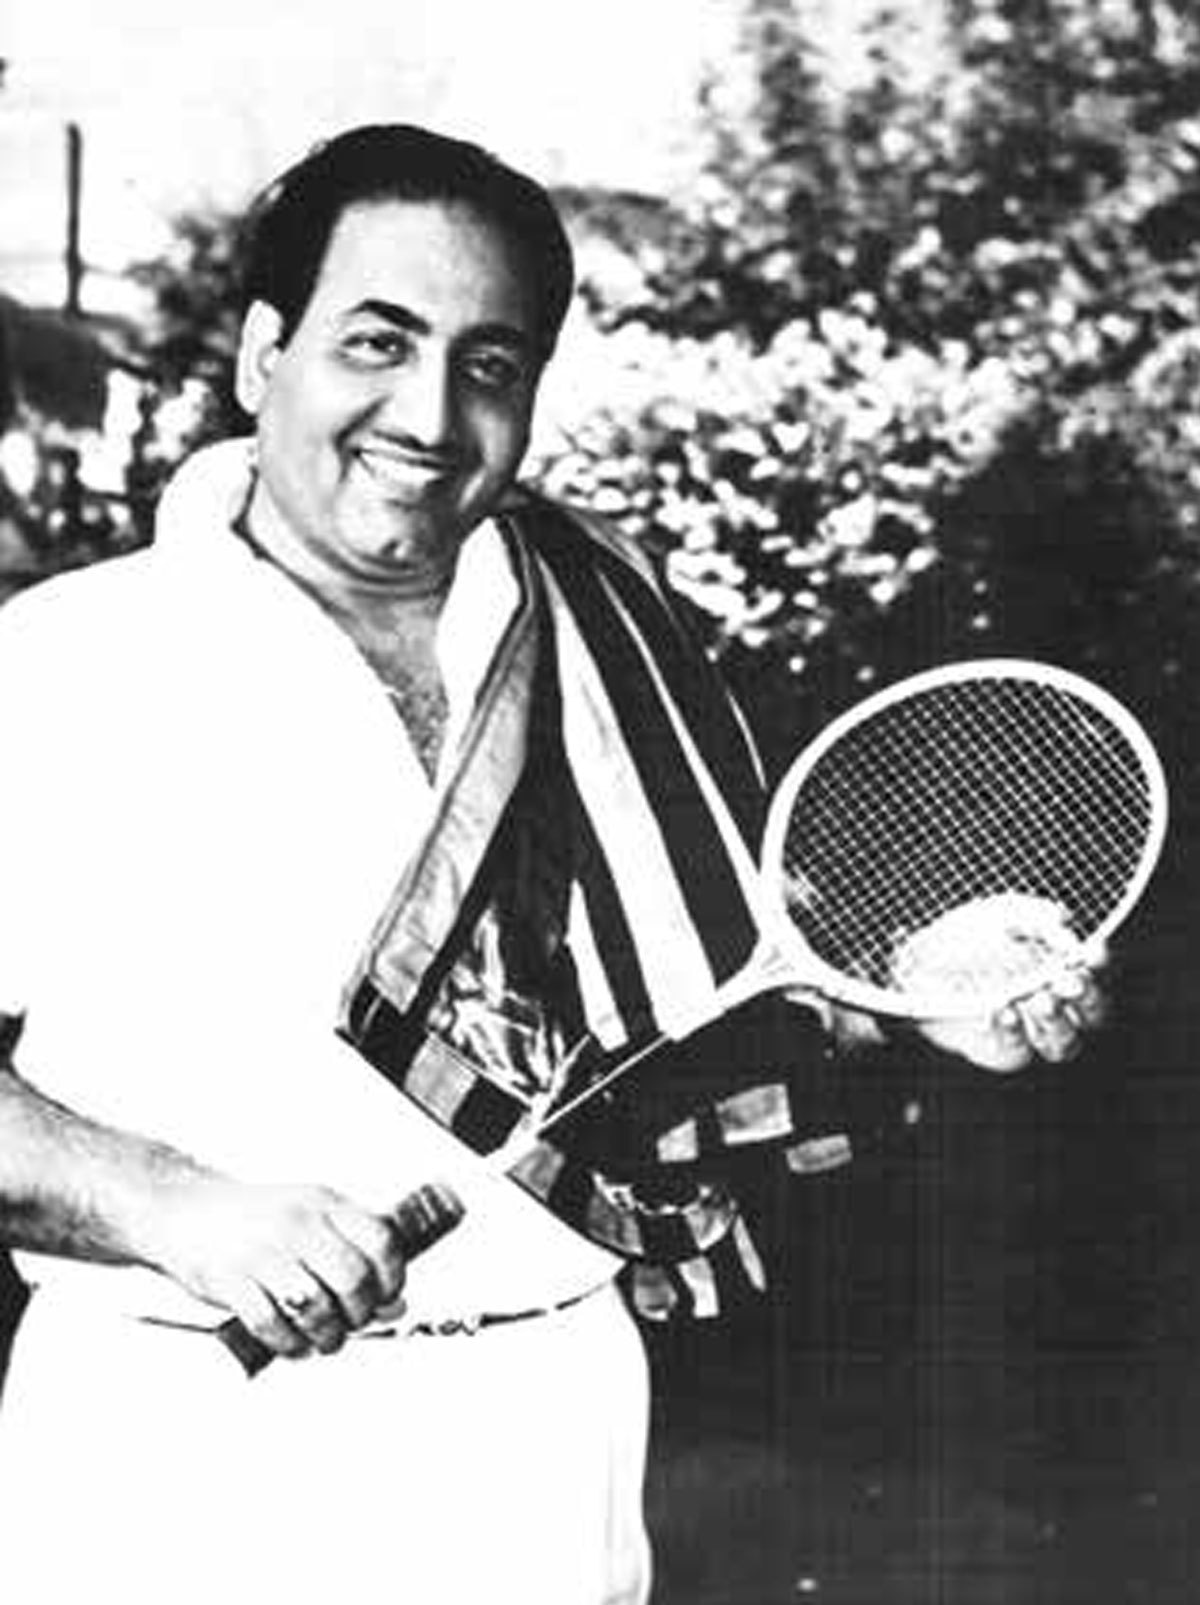 The singer was an avid badminton player. Courtesy 'Mohammed Rafi' by Sujata Dev.